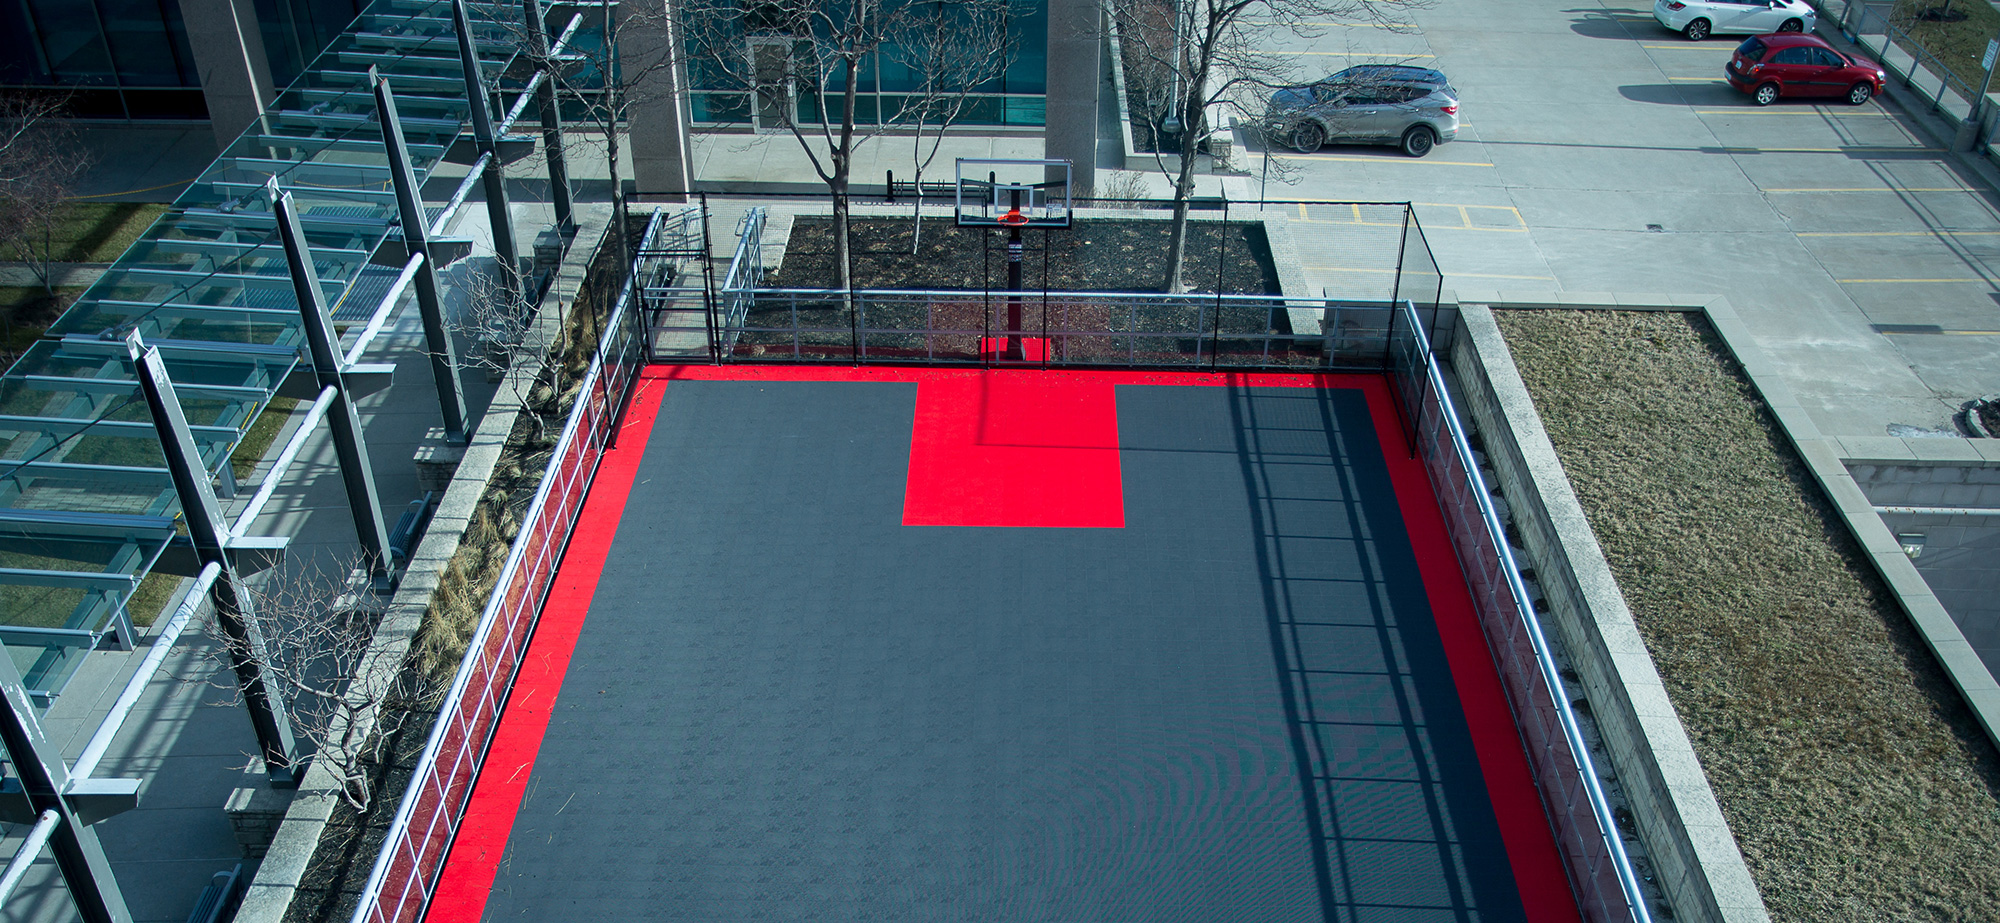 Steelestech-basketball-court